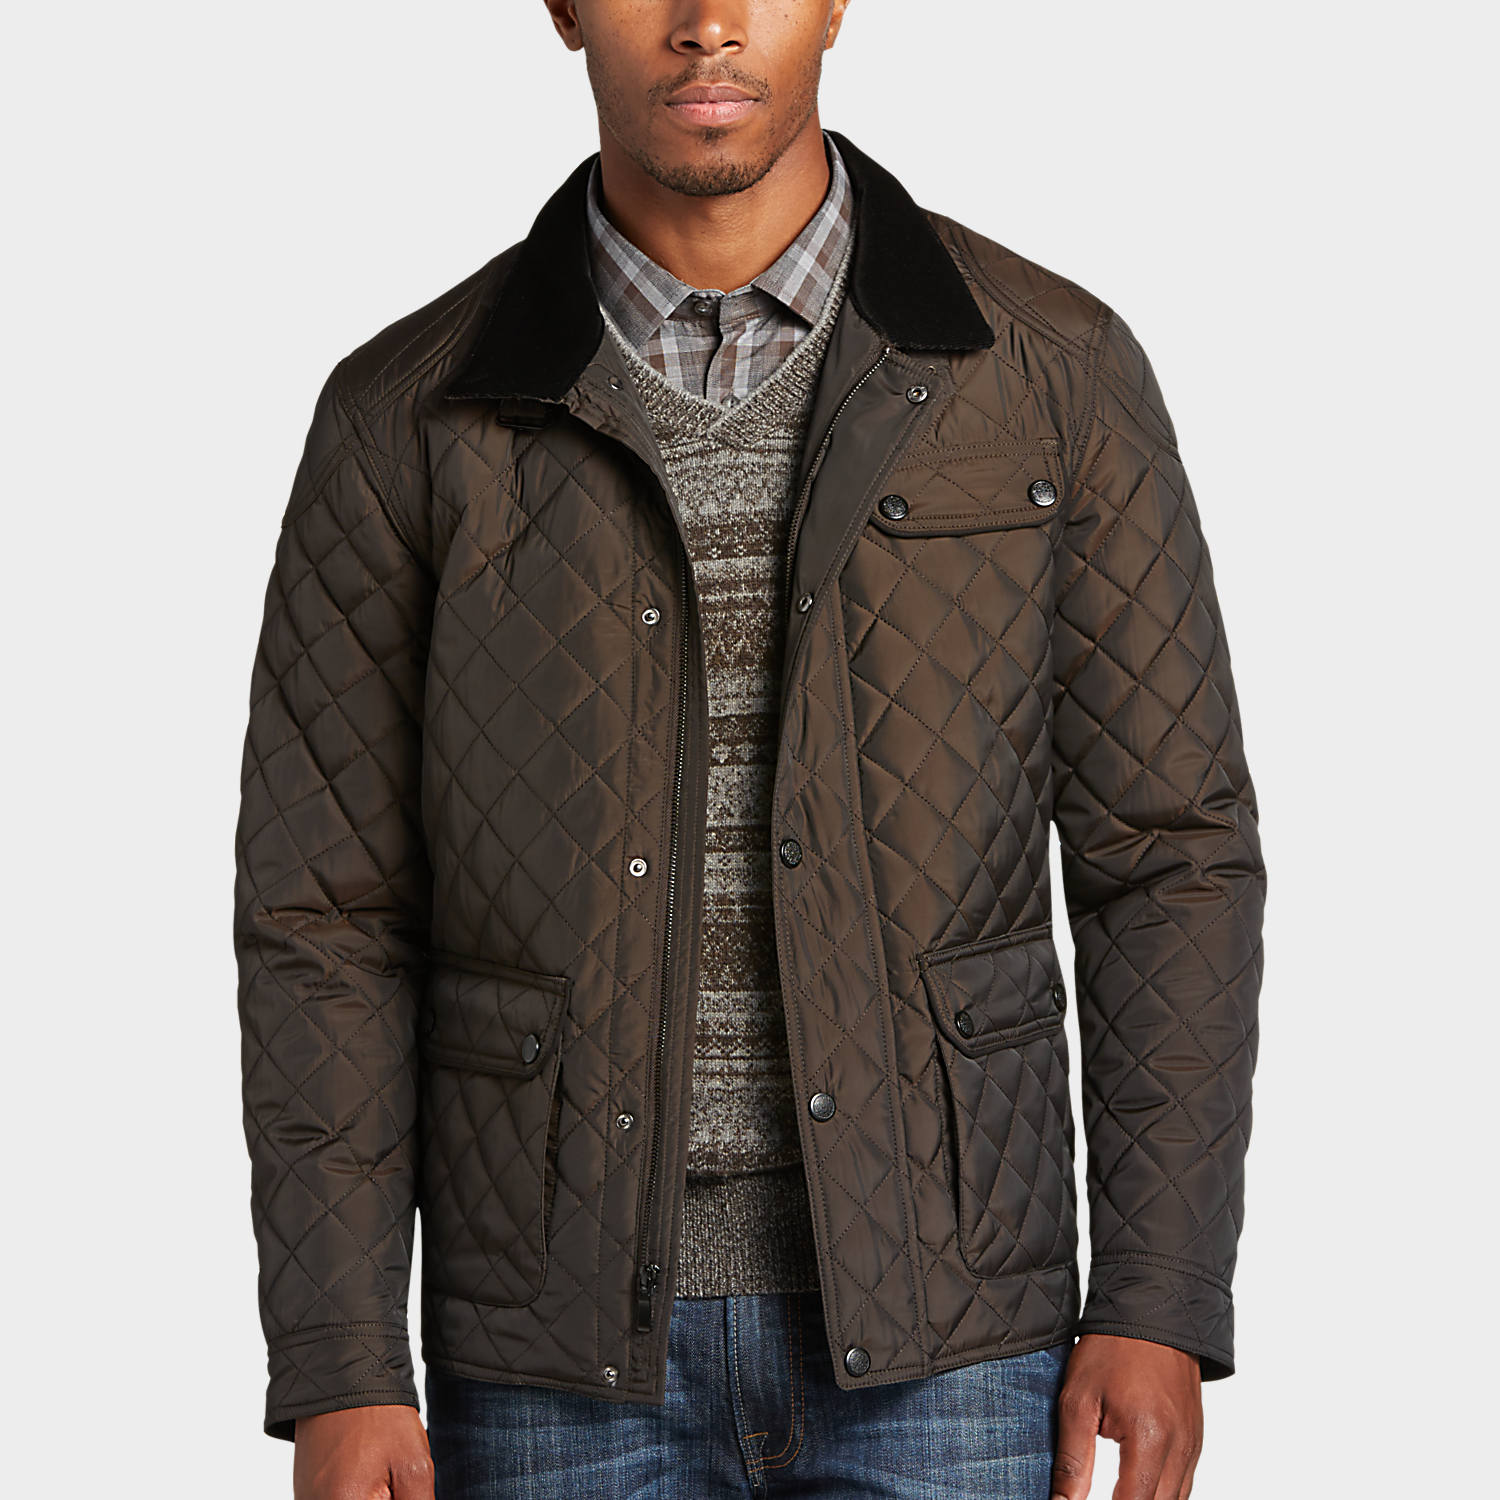 Men's Outerwear on Sale - Discounted Jackets & Coats | Men's Wearhouse